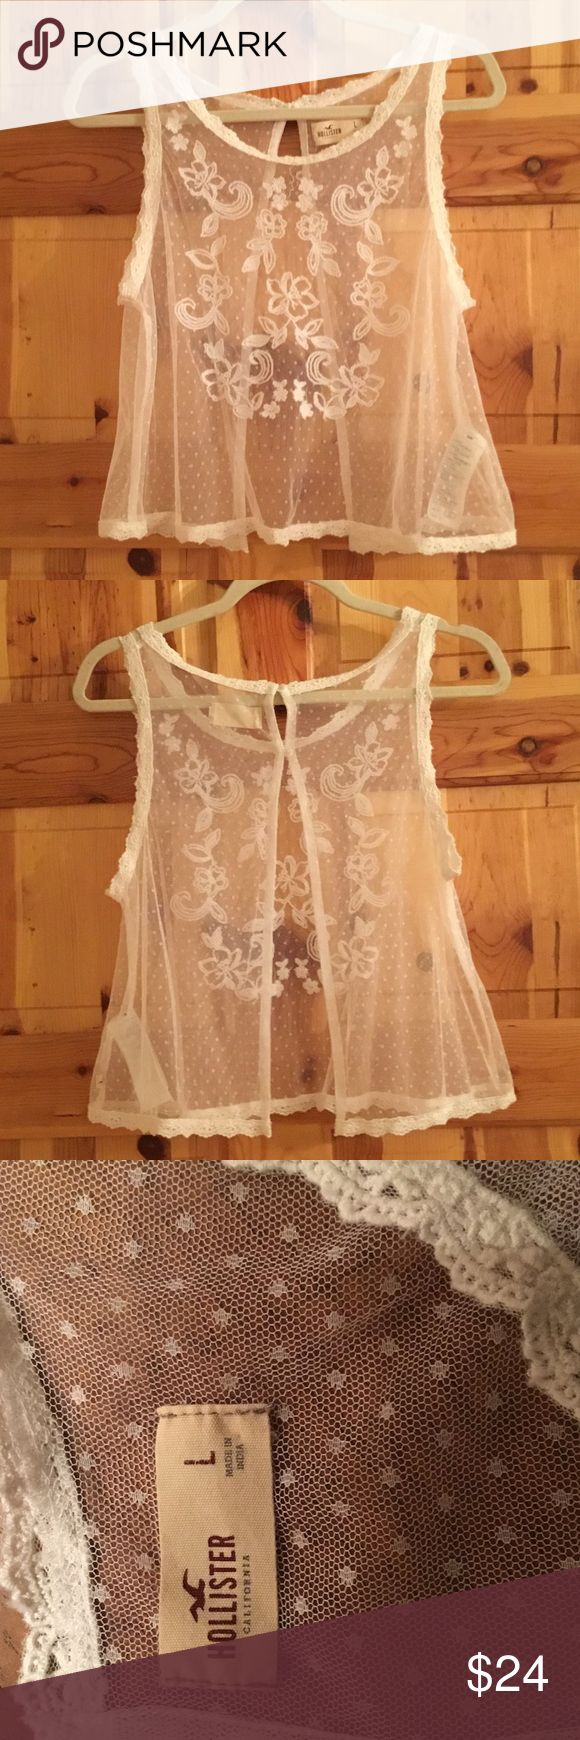 NWOT HOLLISTER BOHO BRALETTE TOP NWOT HOLLISTER BOHO TOP. Perfect layering top. Wear with a pretty bralette or over your bikini top! Gorgeous spring and summer piece. BRAND NEW NEVER WORN.  From my clean non smoking home. Check out my other items as I am cleaning out closets and listing a lot of good stuff! I do bundle...thanks for looking!😊 Hollister Tops